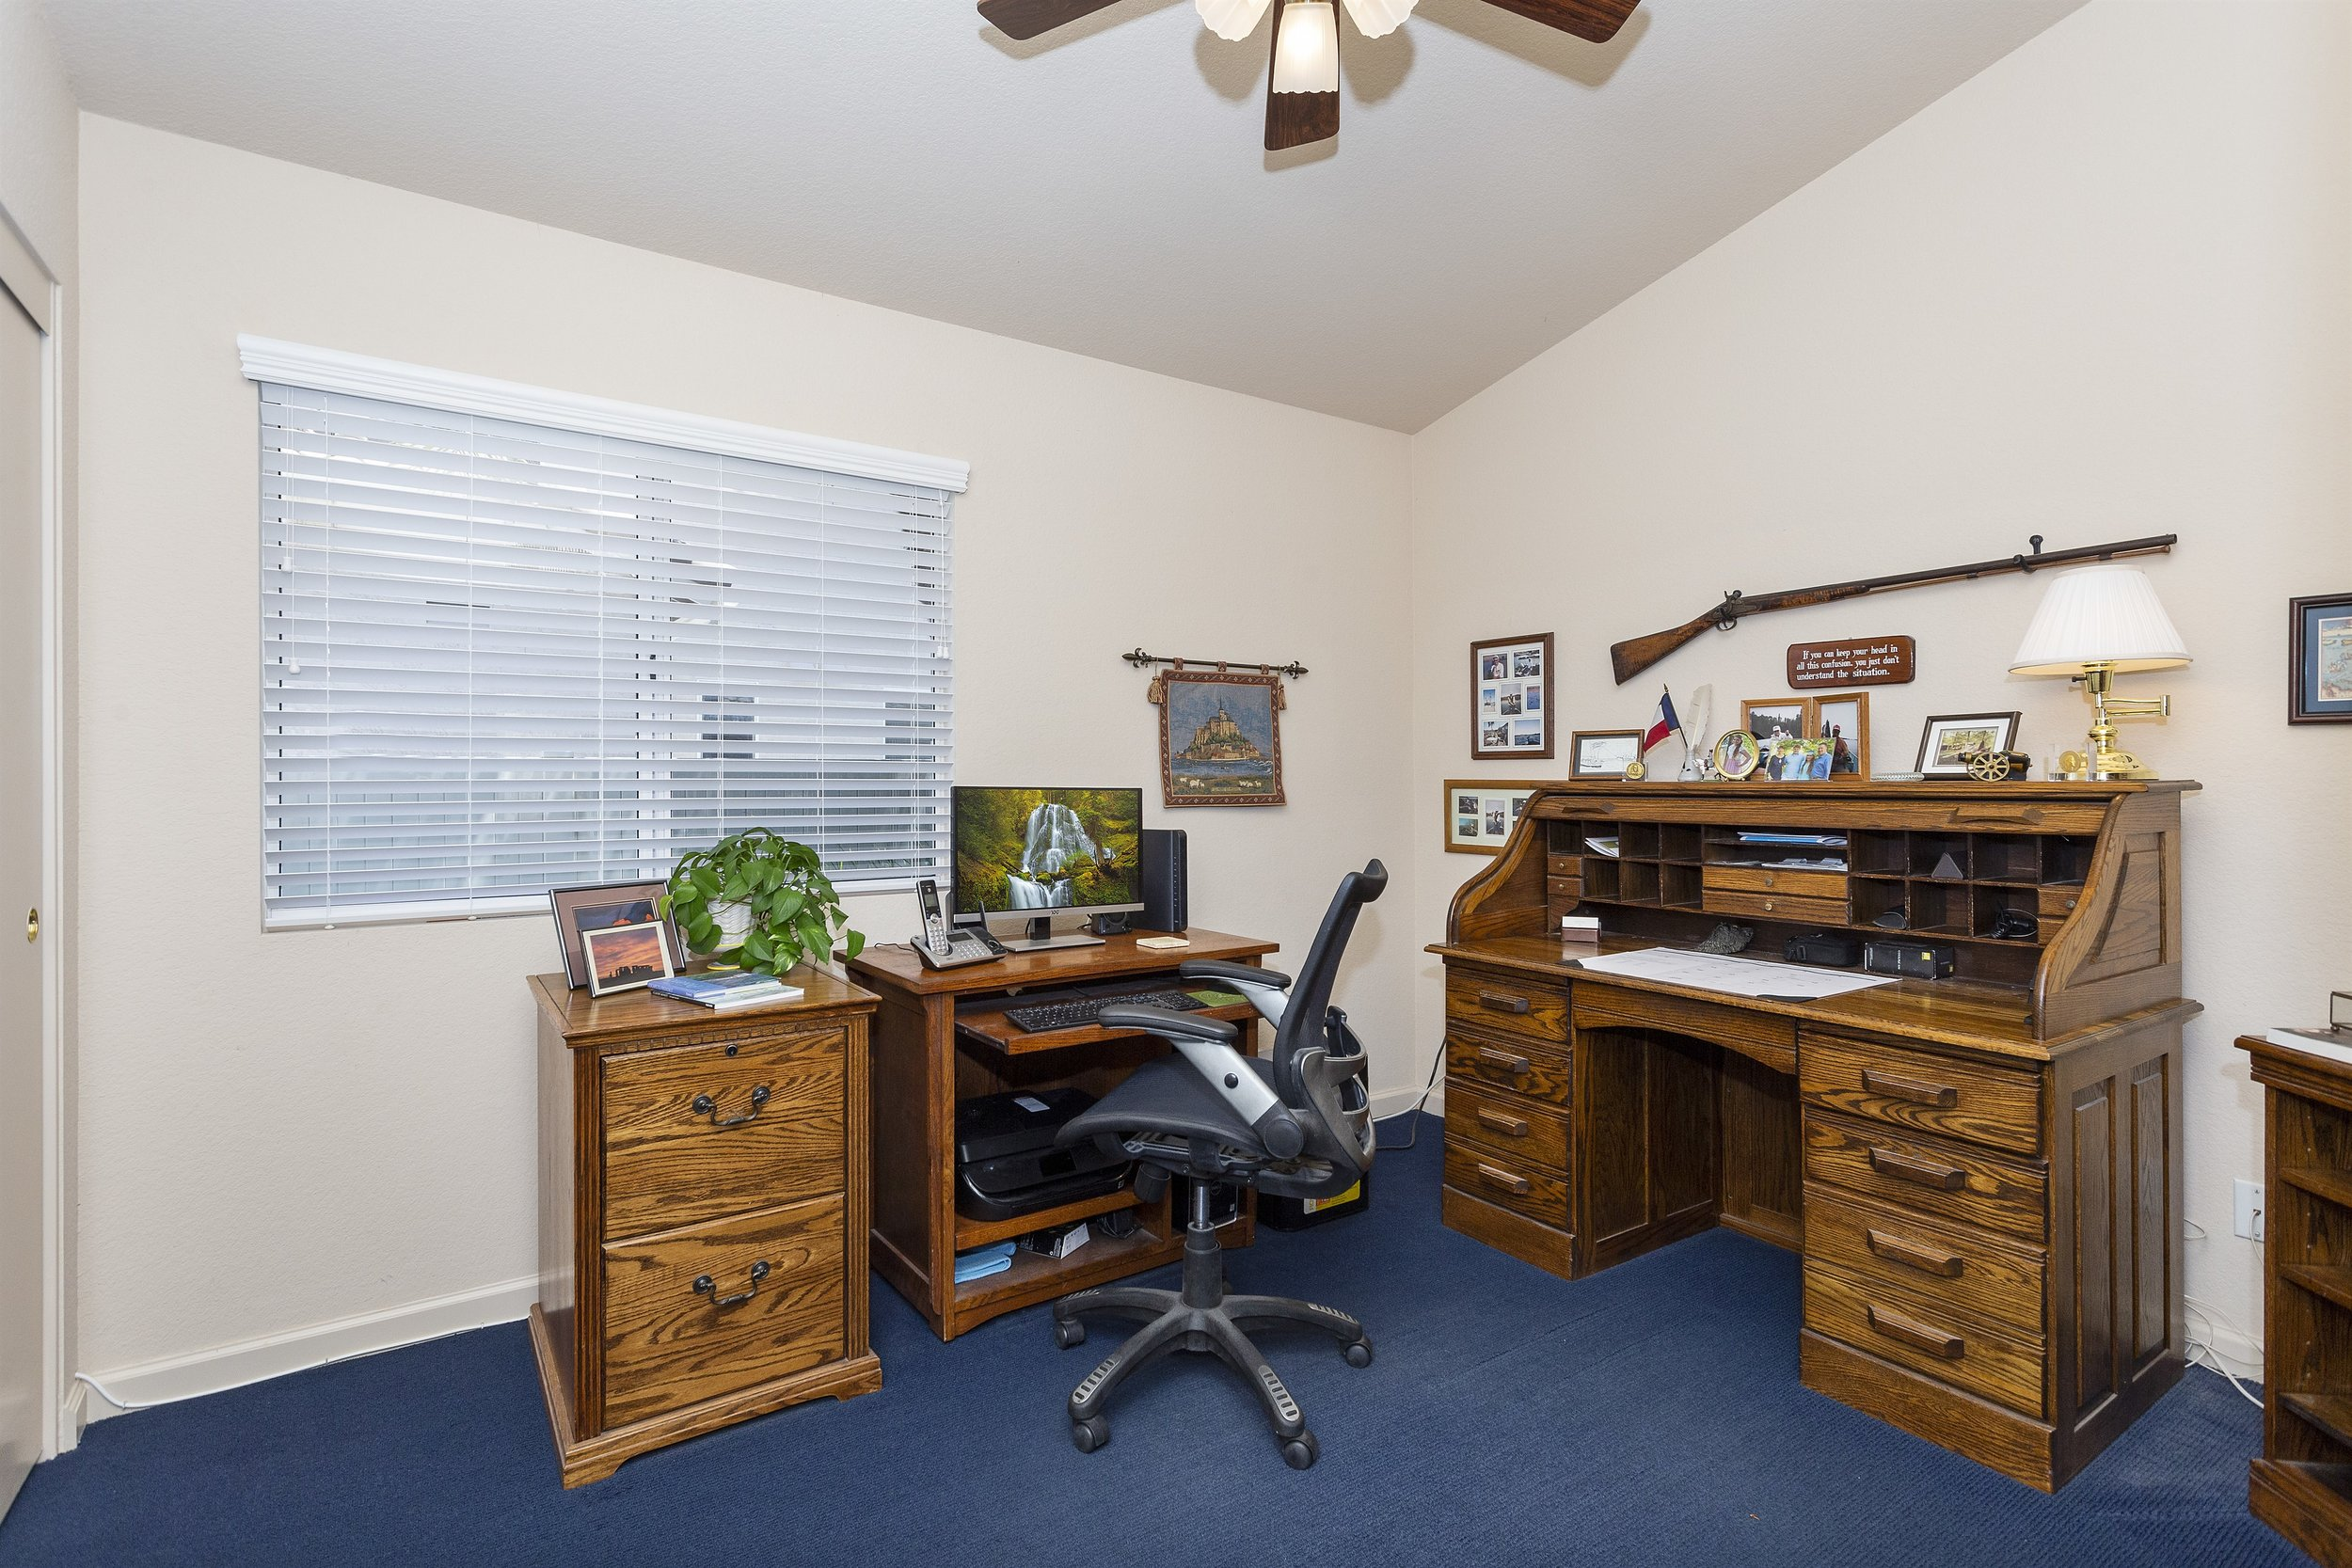 025_OfficeBedroom.jpg